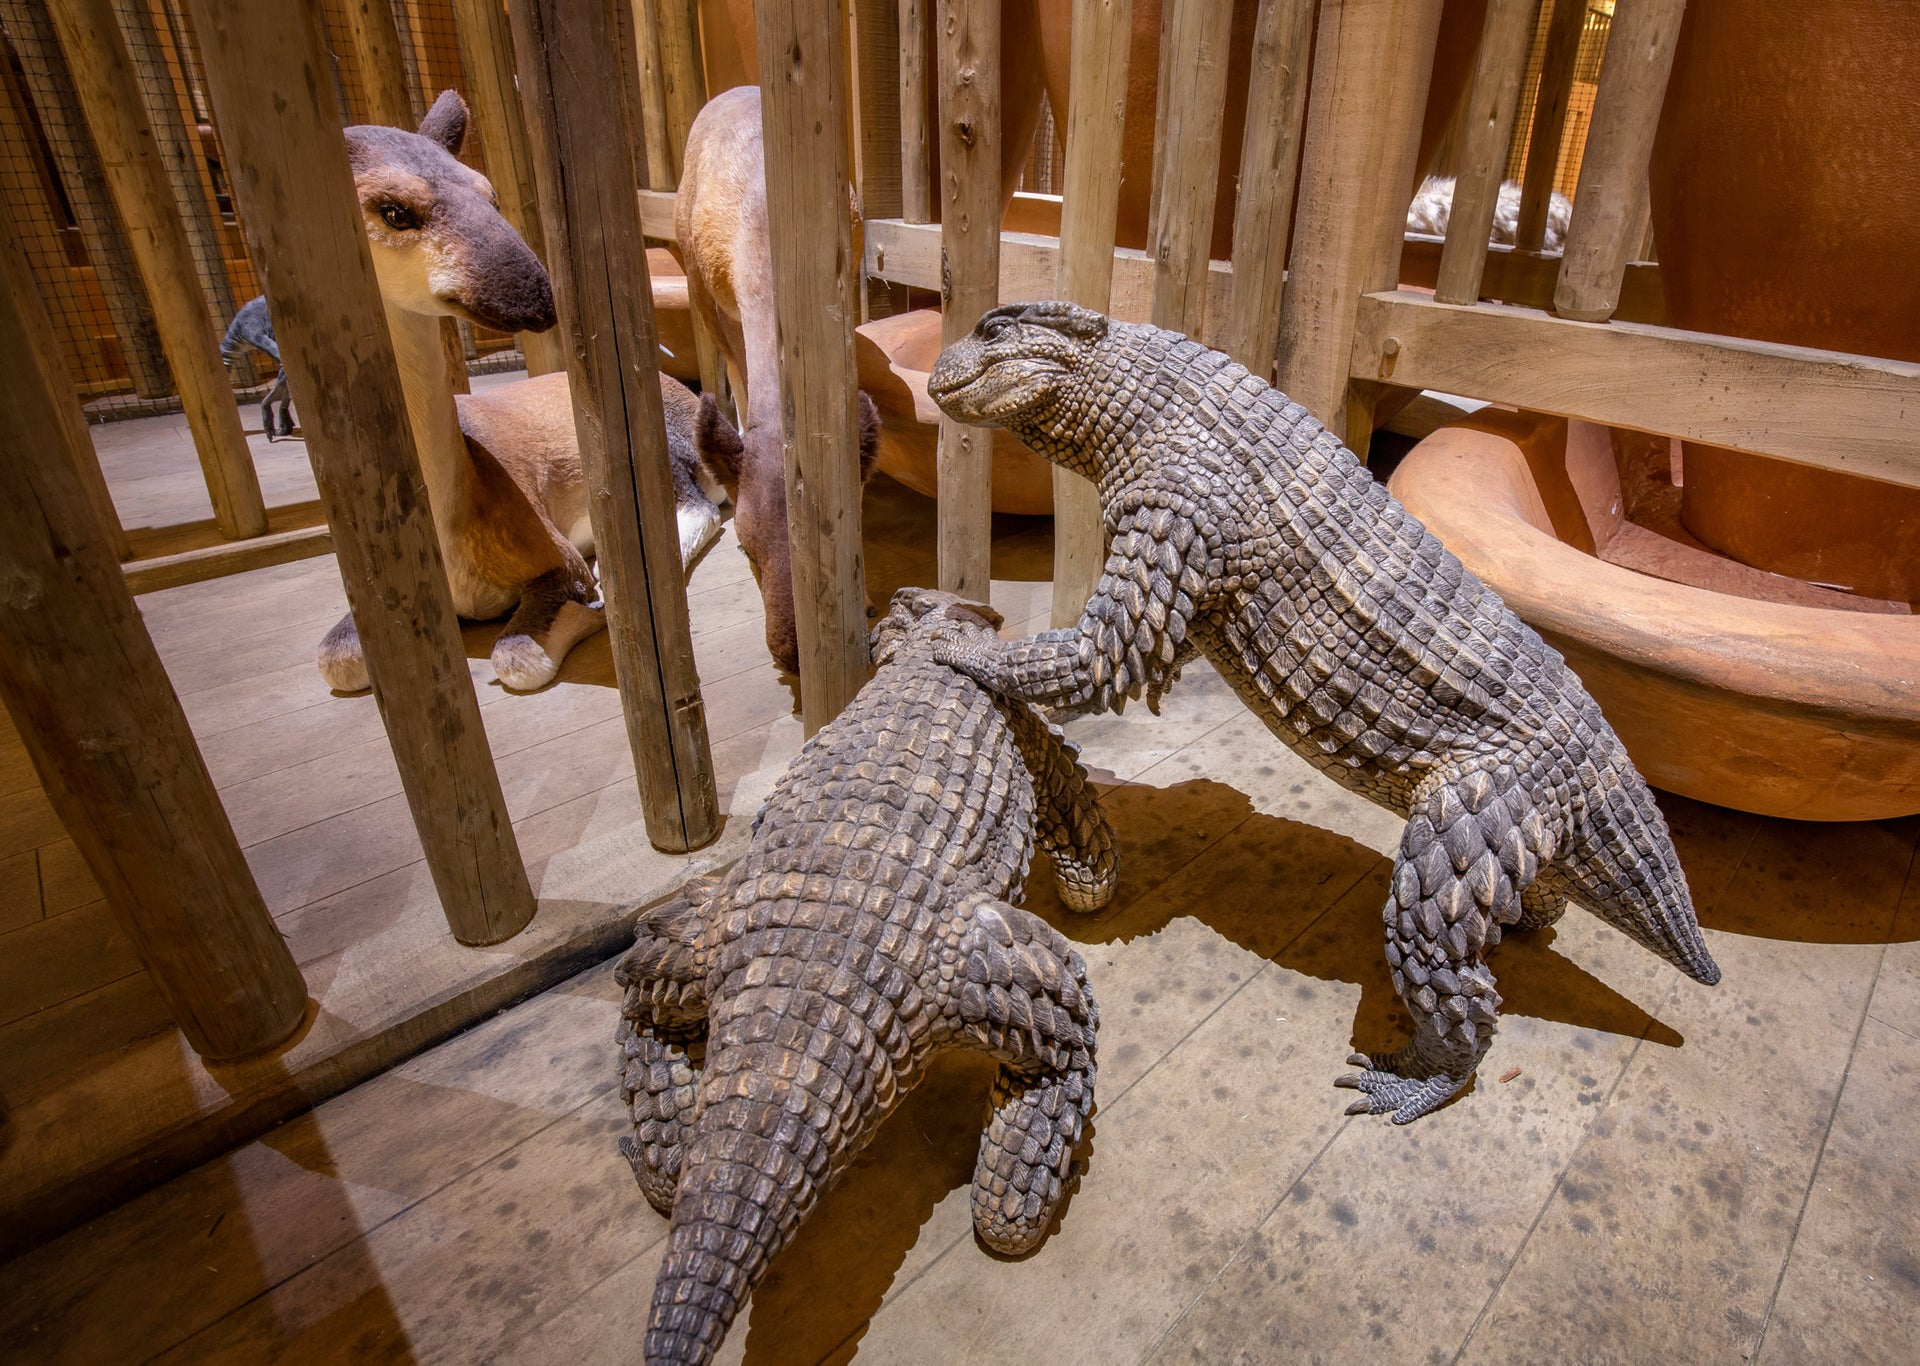 Lifelike pairs of animals in the recreated Noah's Ark.